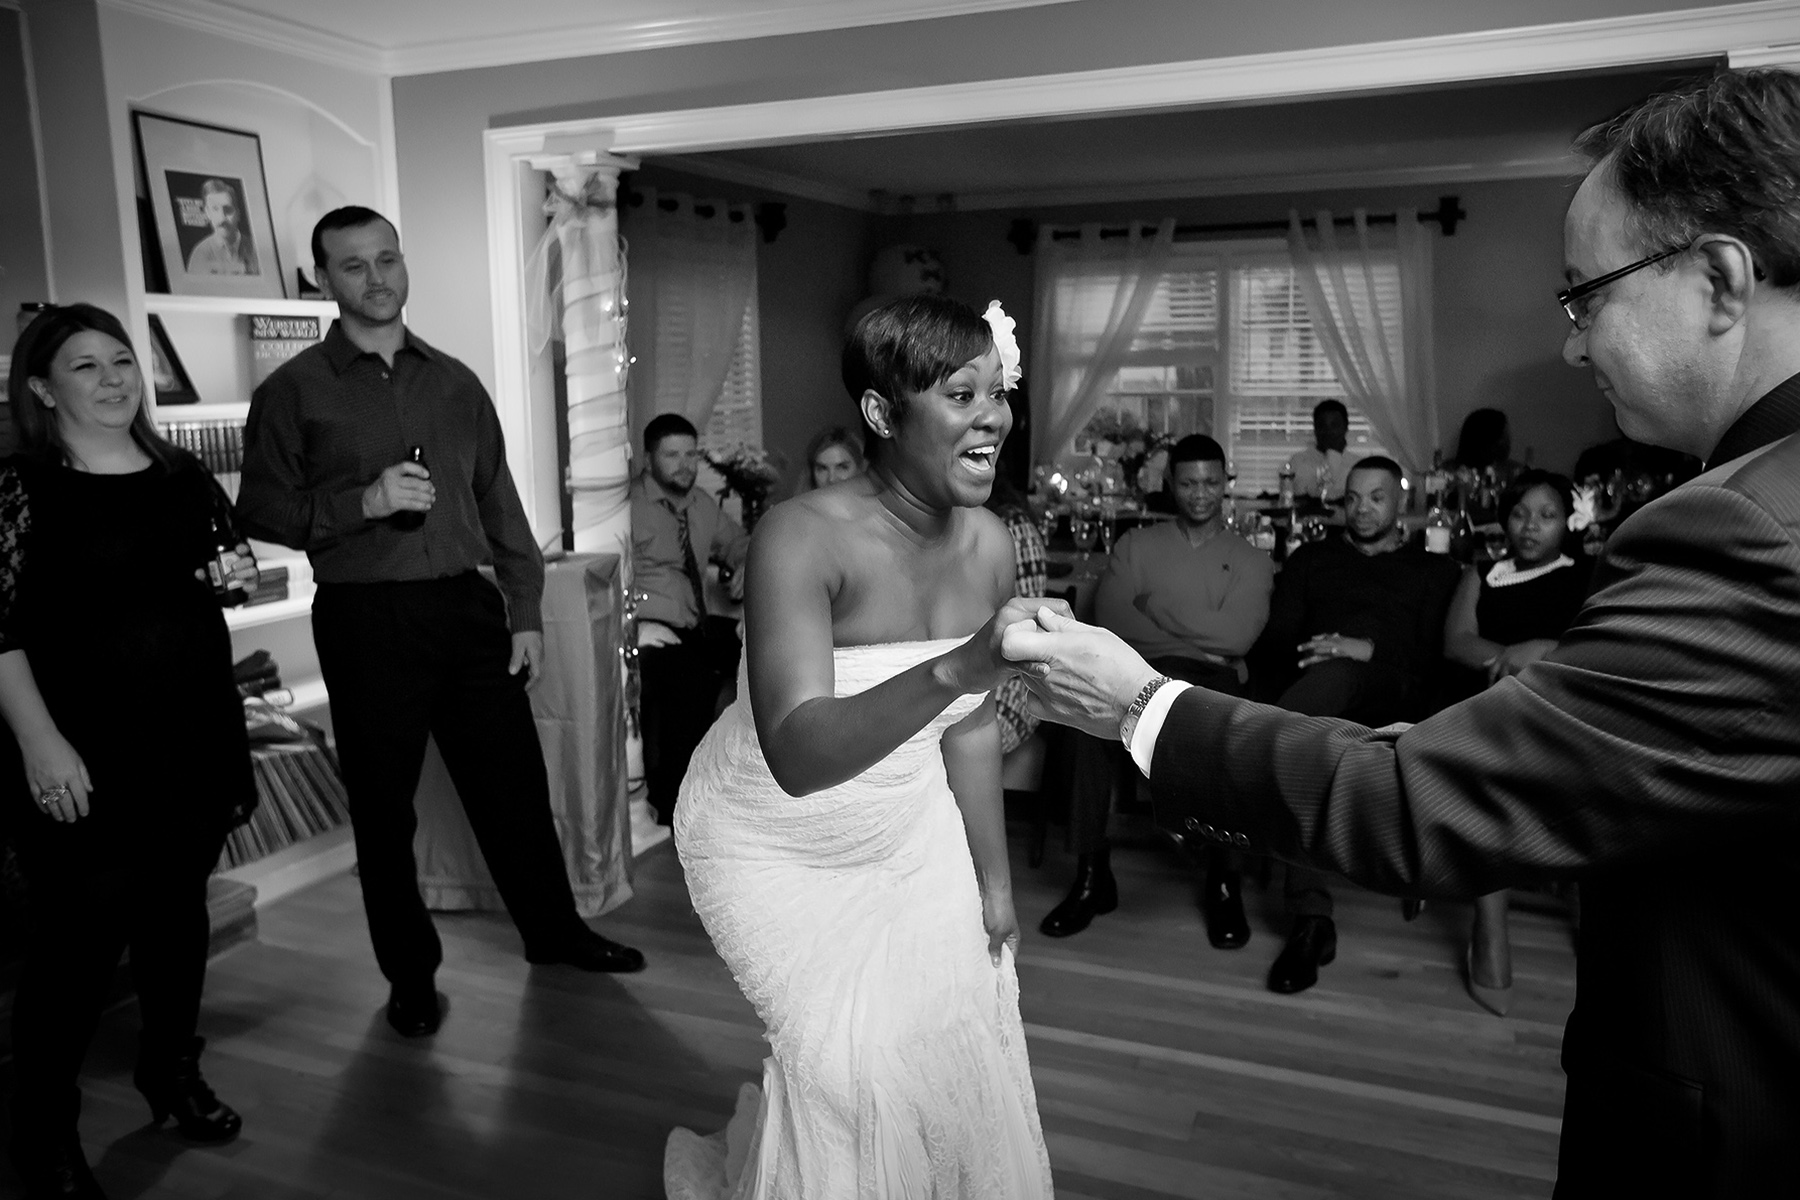 Georgia Wedding Photo - Sandy Springs At Home Wedding | The bride grabs her boss by the hands and pulls him onto the dance floor